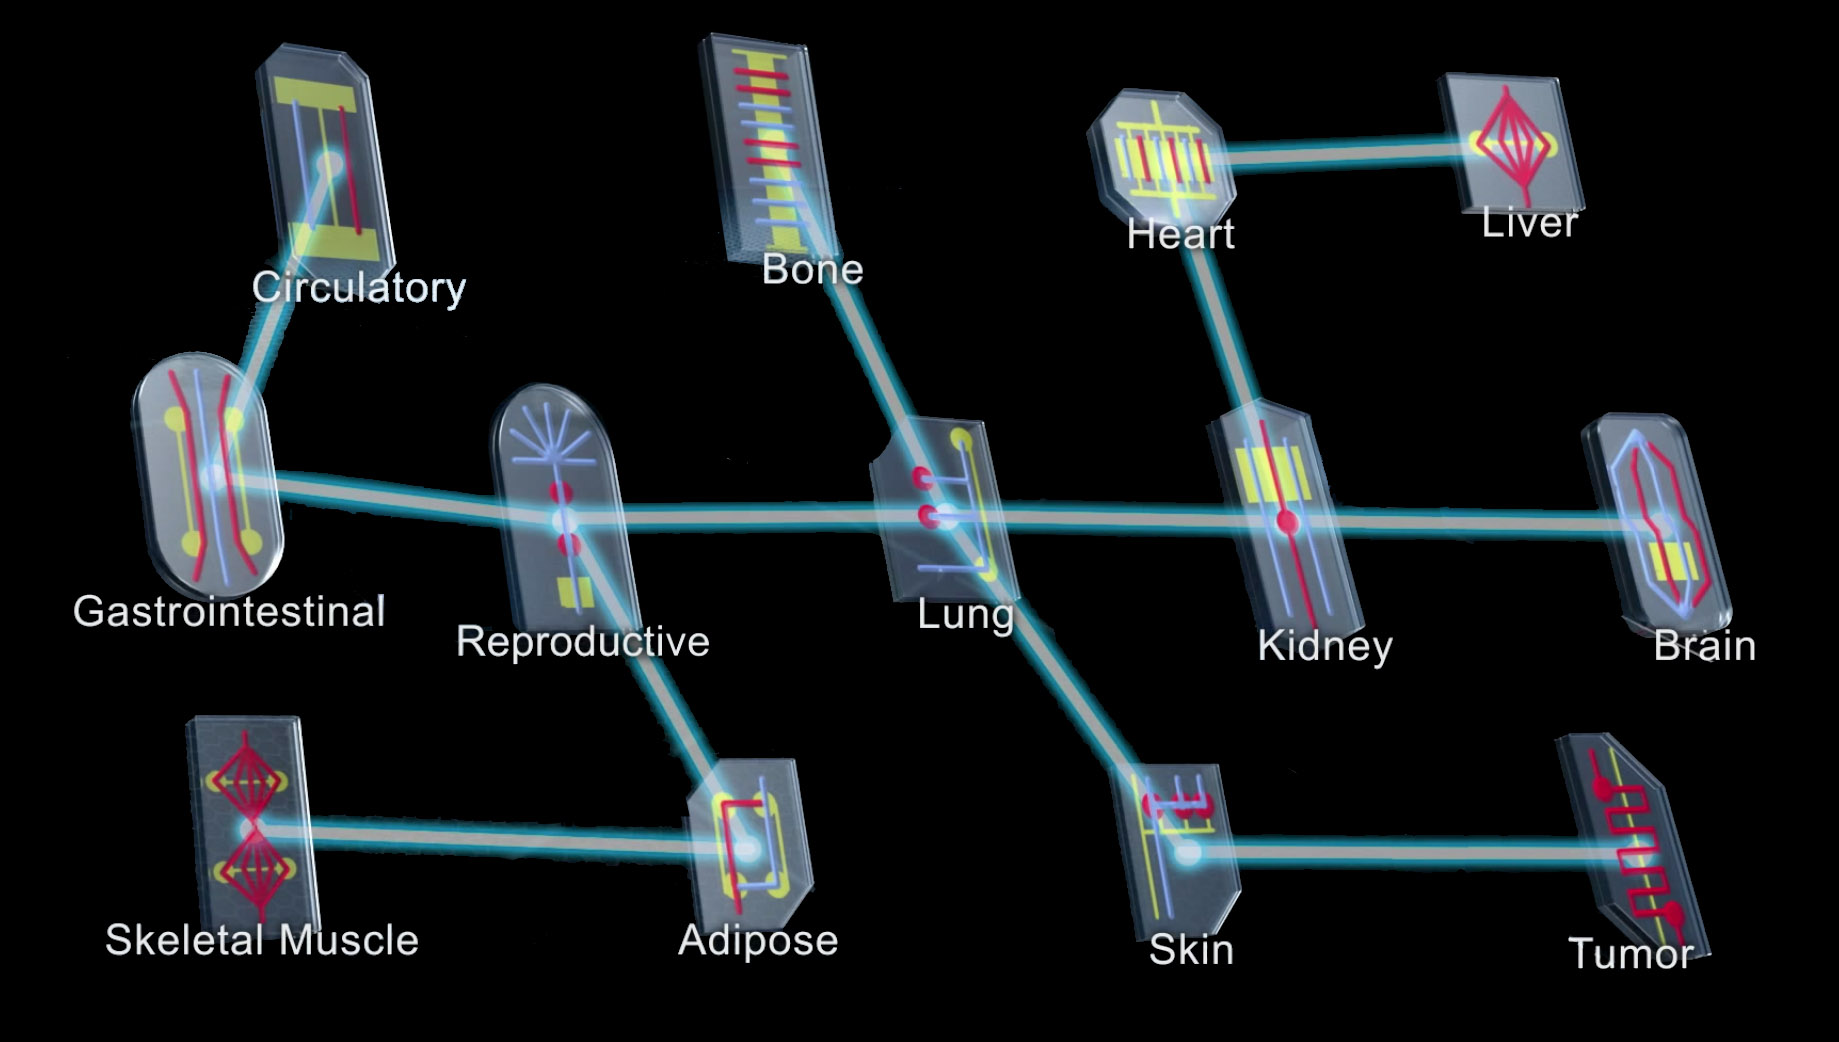 NIH NCATS network of tissue chips or organs on chips